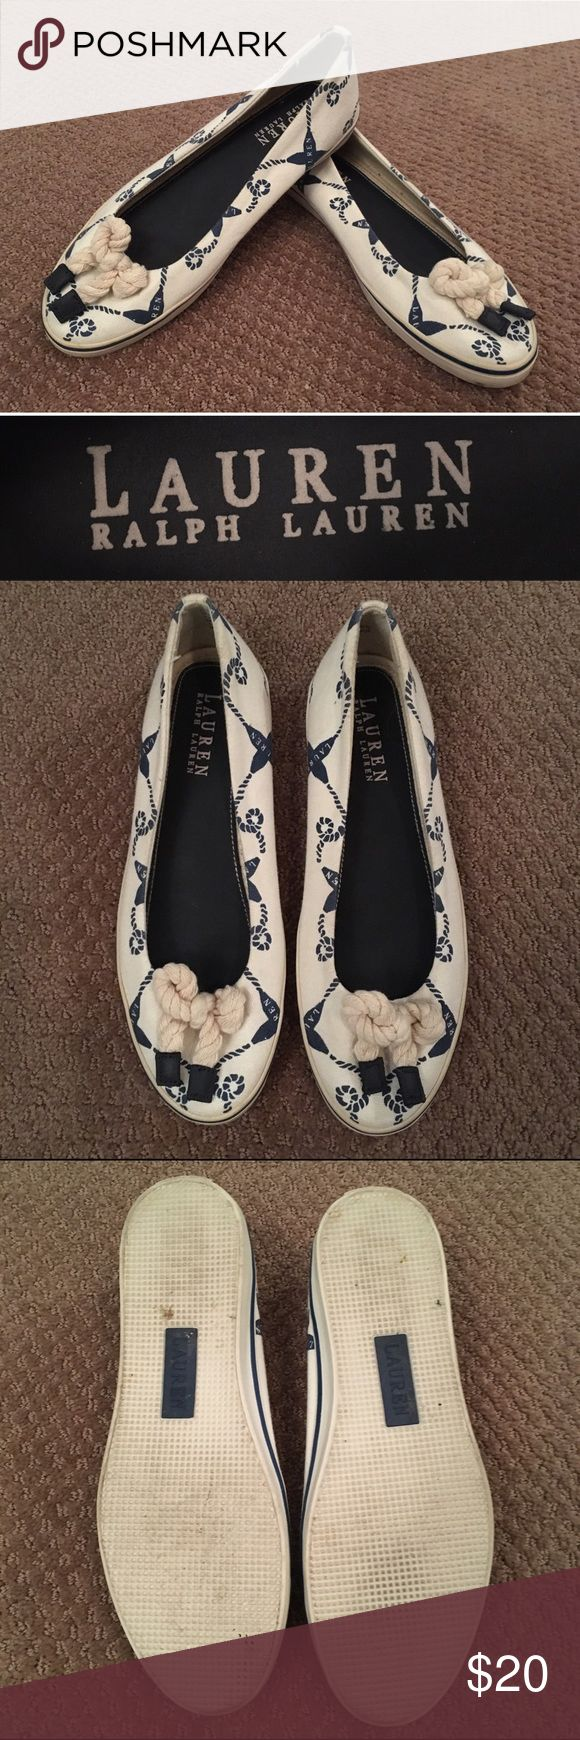 Lauren by Ralph Lauren Nautical Shoes These Lauren by Ralph Lauren boat shoes have been gently used with little wear and tear. Ask if you have any questions! Lauren Ralph Lauren Shoes Sneakers